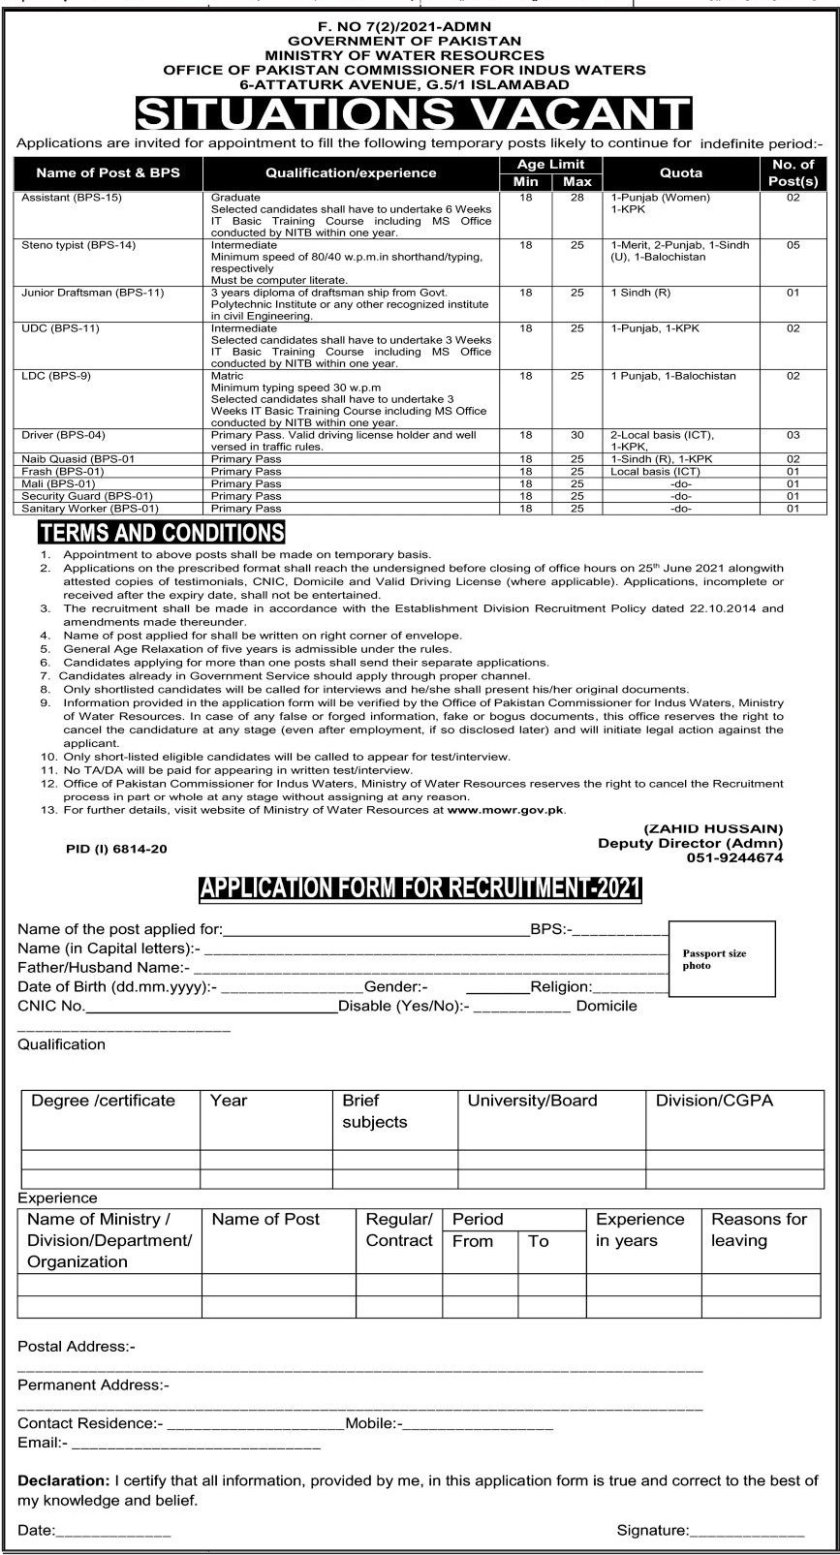 Ministry of Water Resources Islamabad MOWR Jobs 2021